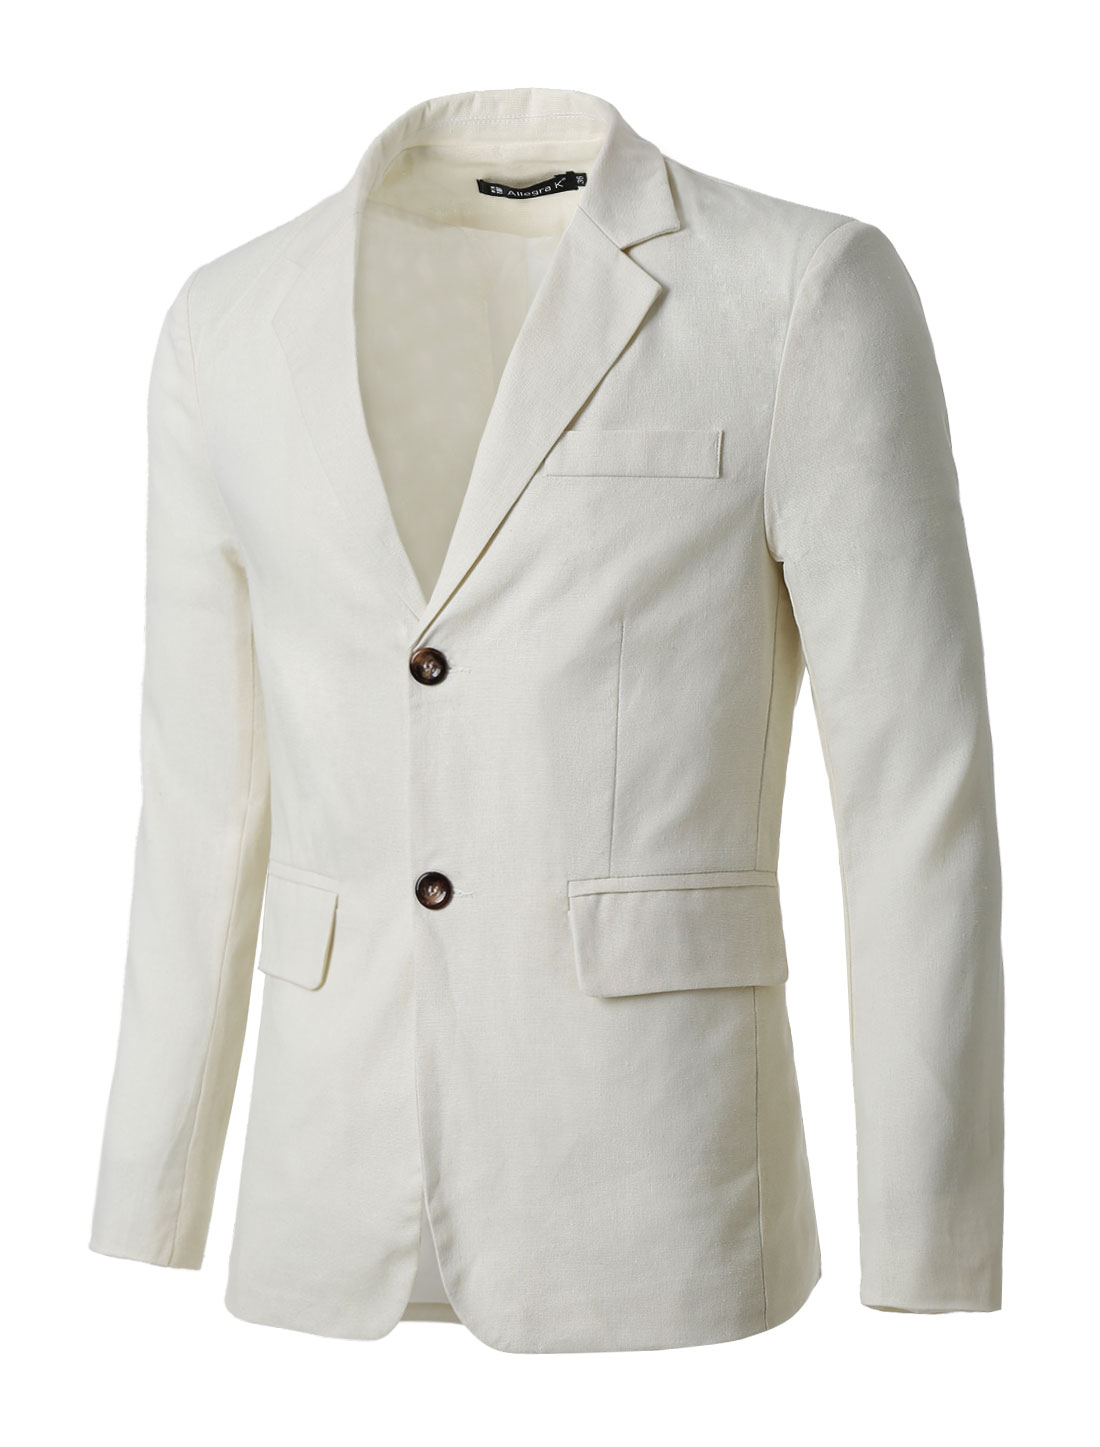 Man Notched Lapel Padded Shoulders Two-Button Closure Front Blazer Off White L